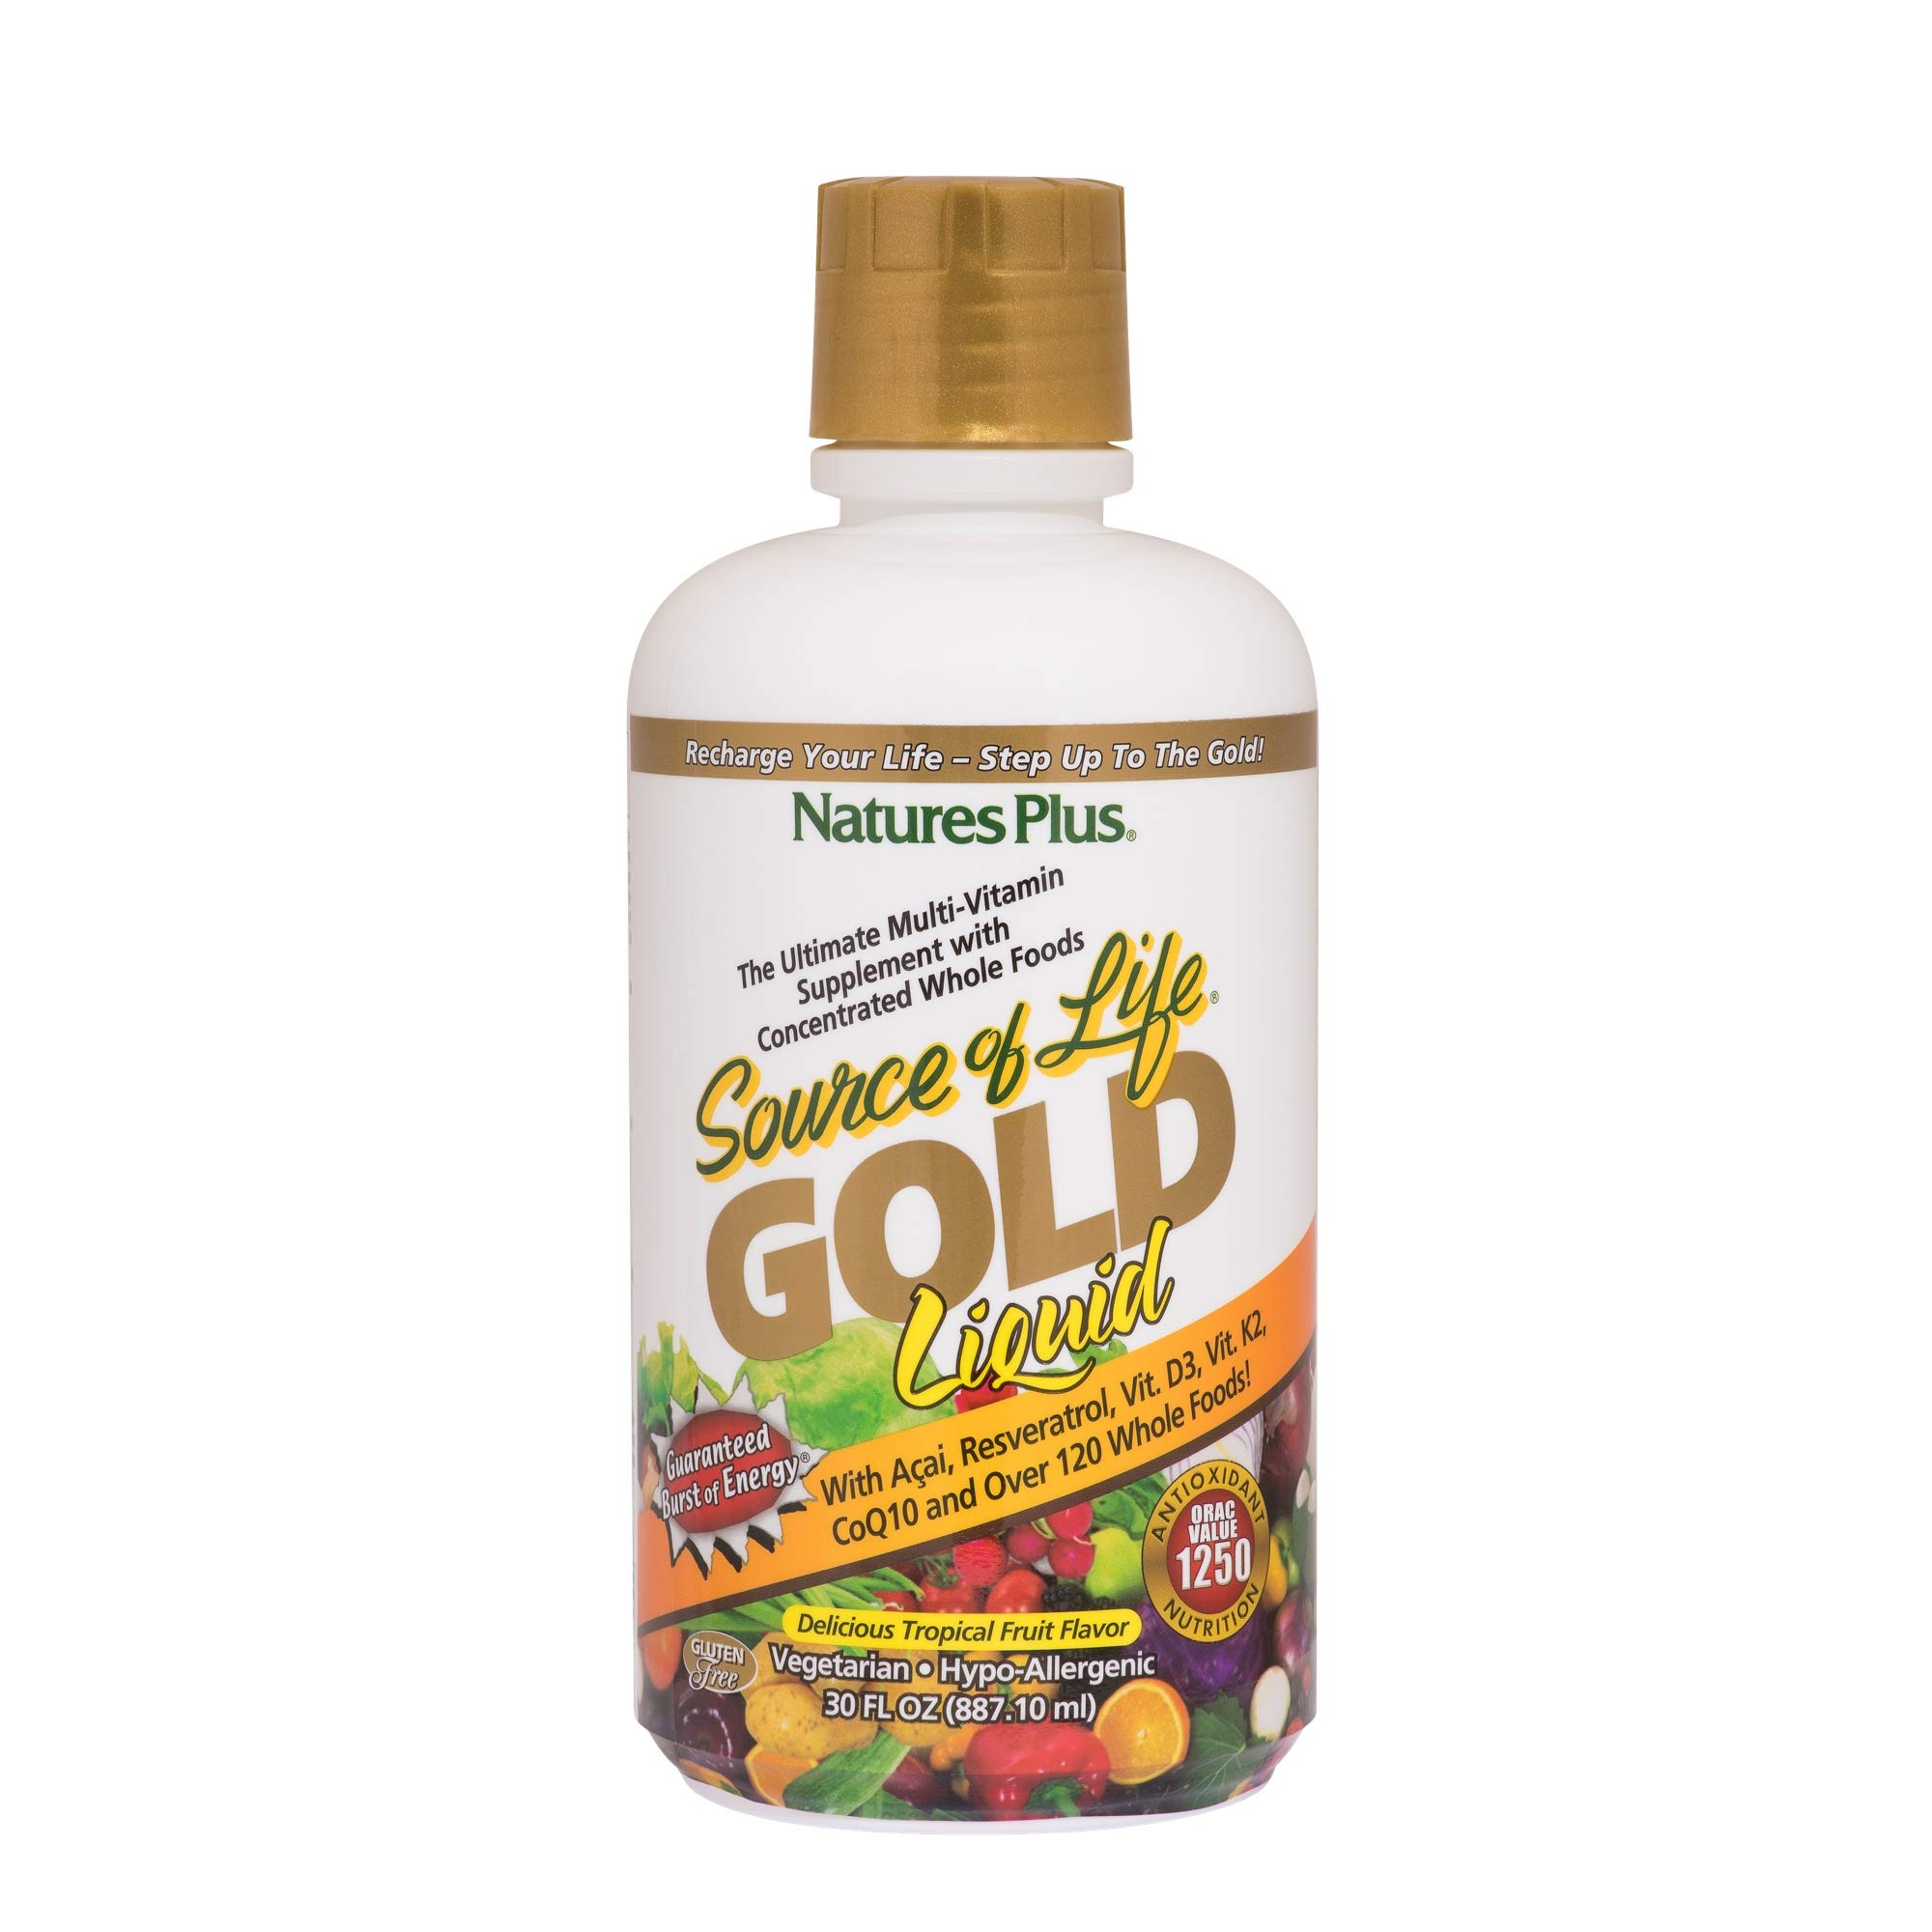 NaturesPlus Source of Life Gold Liquid - 30 fl oz - Tropical Fruit Flavor - Daily High Potency, Organic Whole Food Multivitamin, Prebiotic Complex - Vegetarian, Gluten-Free - 30 Servings by Nature's Plus